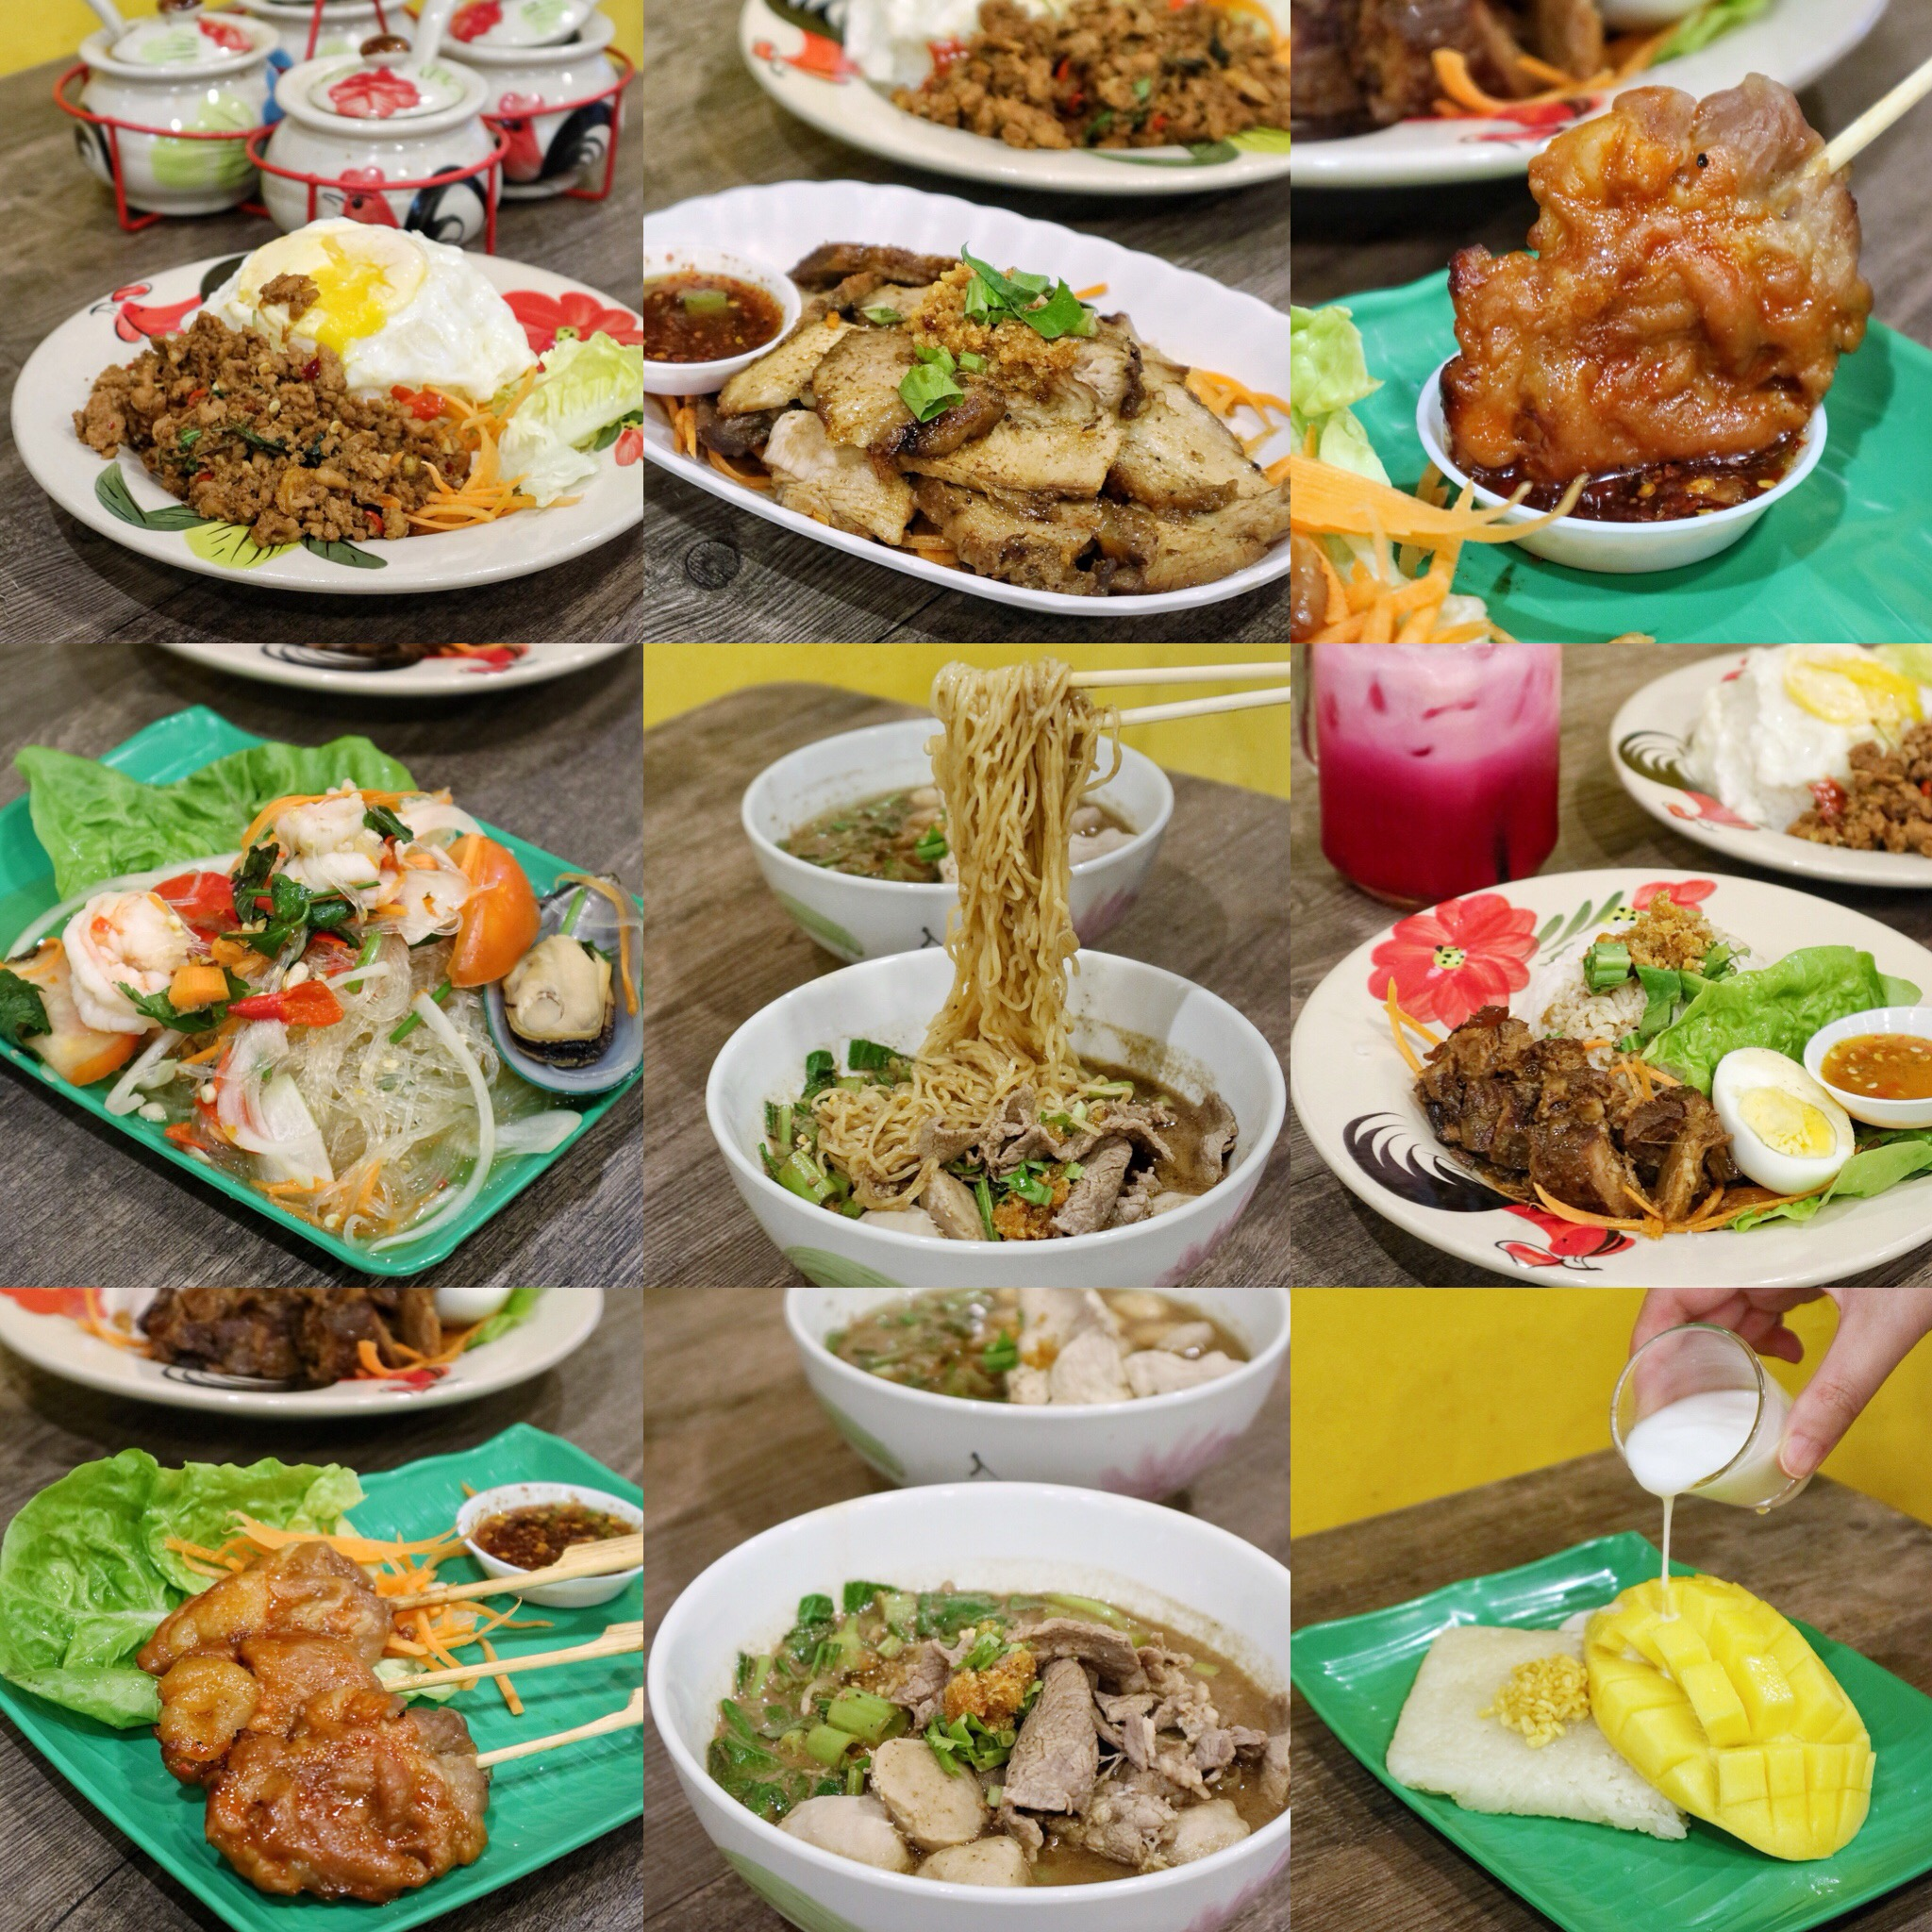 Victory Boat Noodle Café: Authentic, Affordable & Popular Thai Boat Noodles at Beauty World